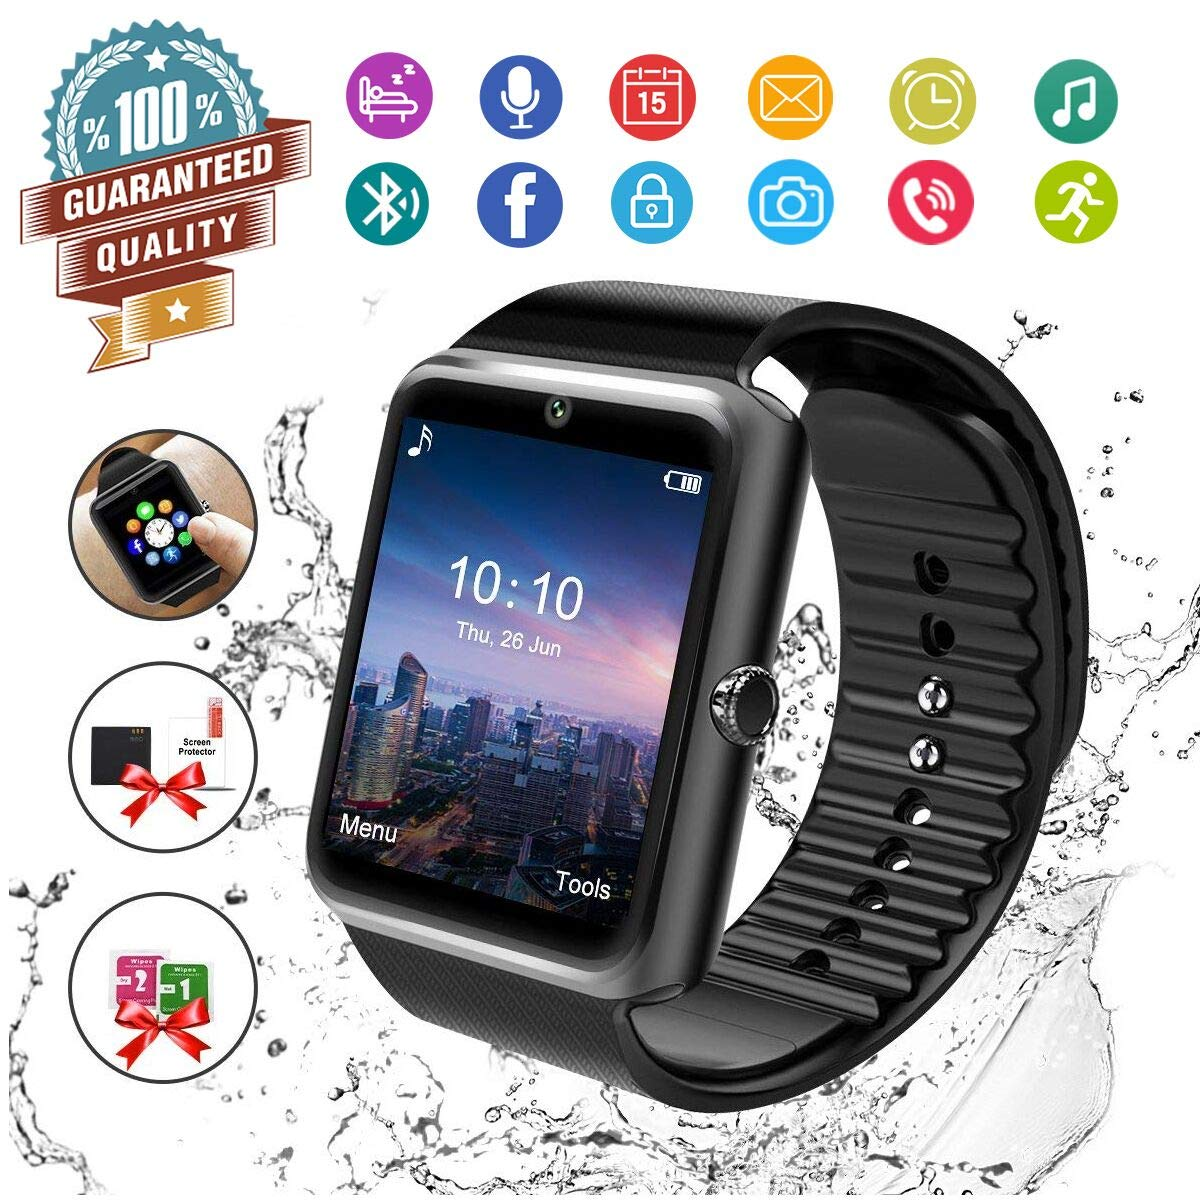 Smart Watch,Bluetooth Smartwatch Touch Screen Wrist Watch with Camera/SIM Card Slot,Waterproof Smart Watch Sports Fitness Tracker Android Phone Watch ...